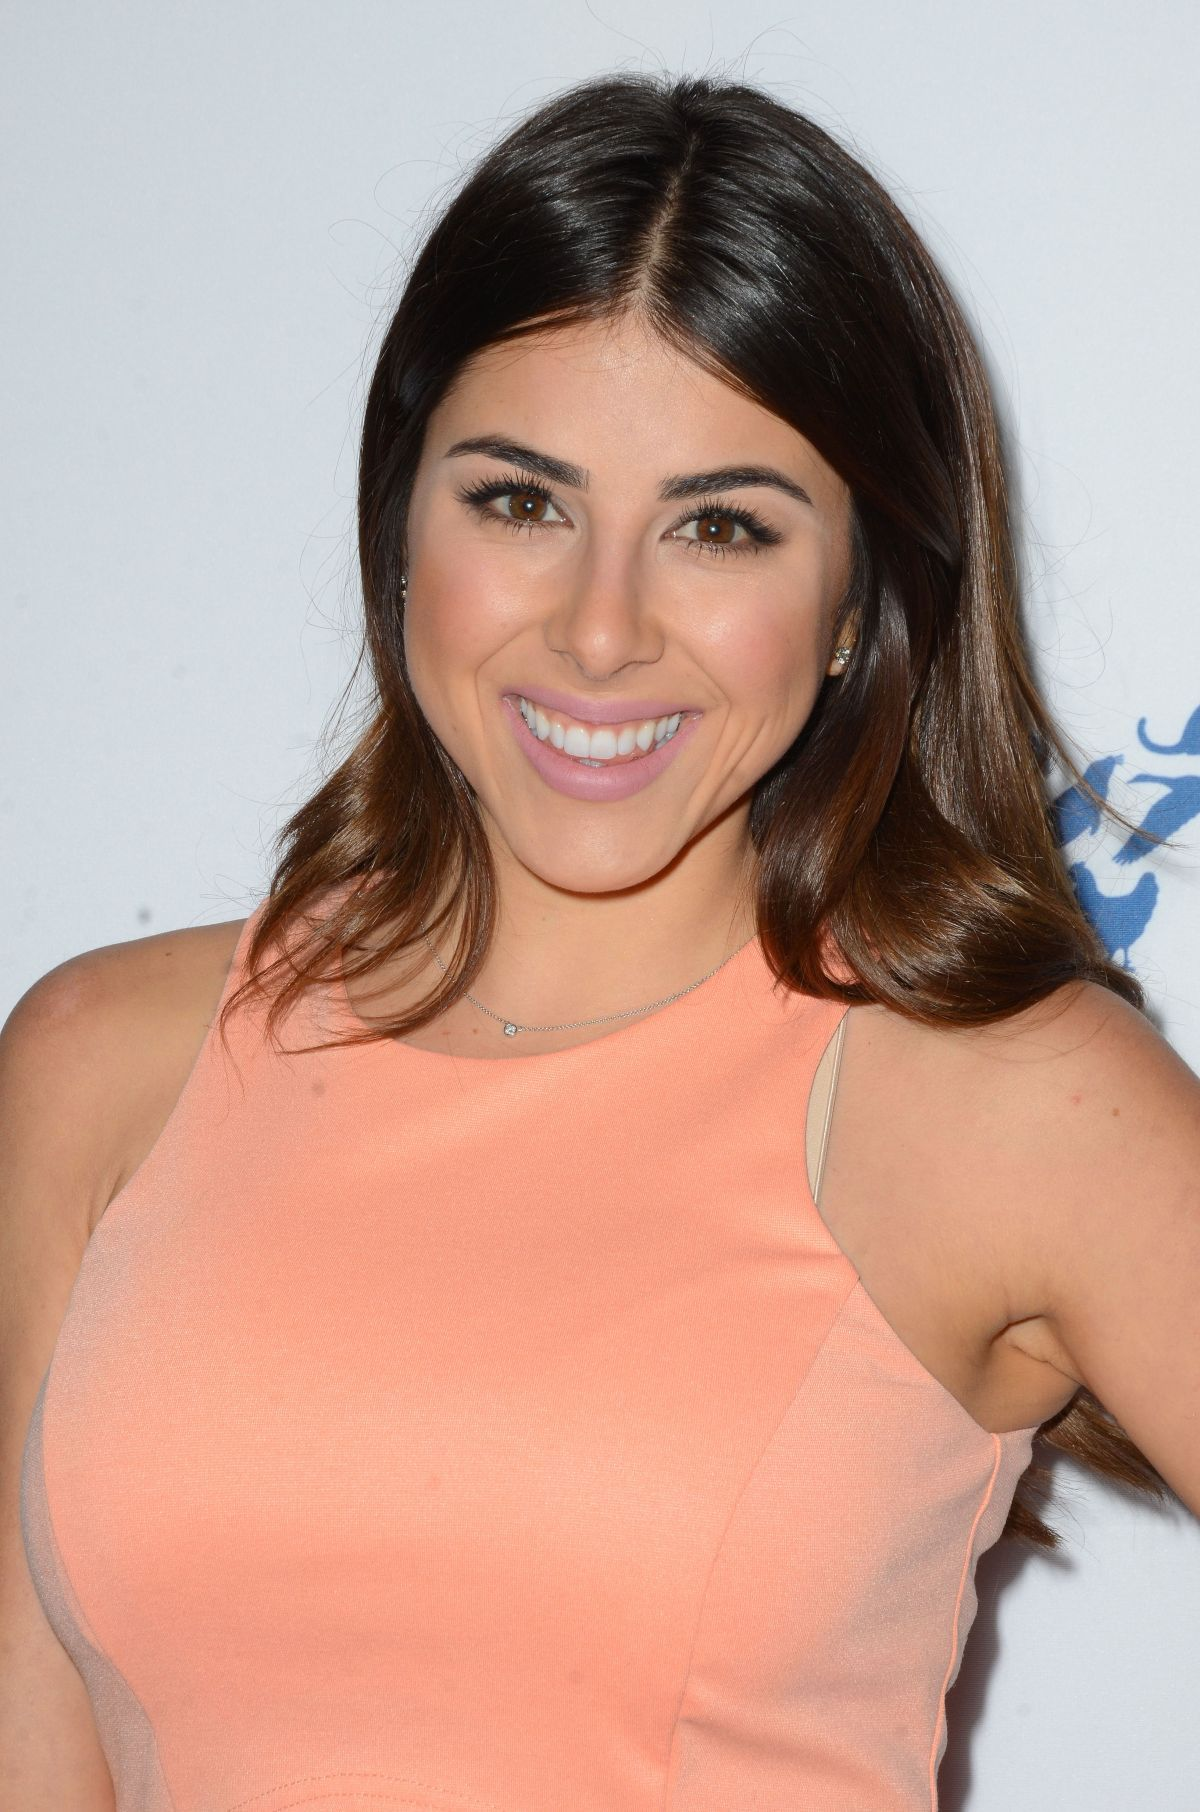 daniella monet facebookdaniella monet instagram, daniella monet songs, daniella monet wiki, daniella monet height weight, daniella monet siblings, daniella monet bio, daniella monet youtube, daniella monet 2016, daniella monet facebook, daniella monet, daniella monet singing, daniella monet 2015, даниелла монет, daniella monet bikini, daniella monet snapchat, daniella monet twitter, daniella monet boyfriend, daniella monet lose weight, daniella monet 2014, daniella monet victorious